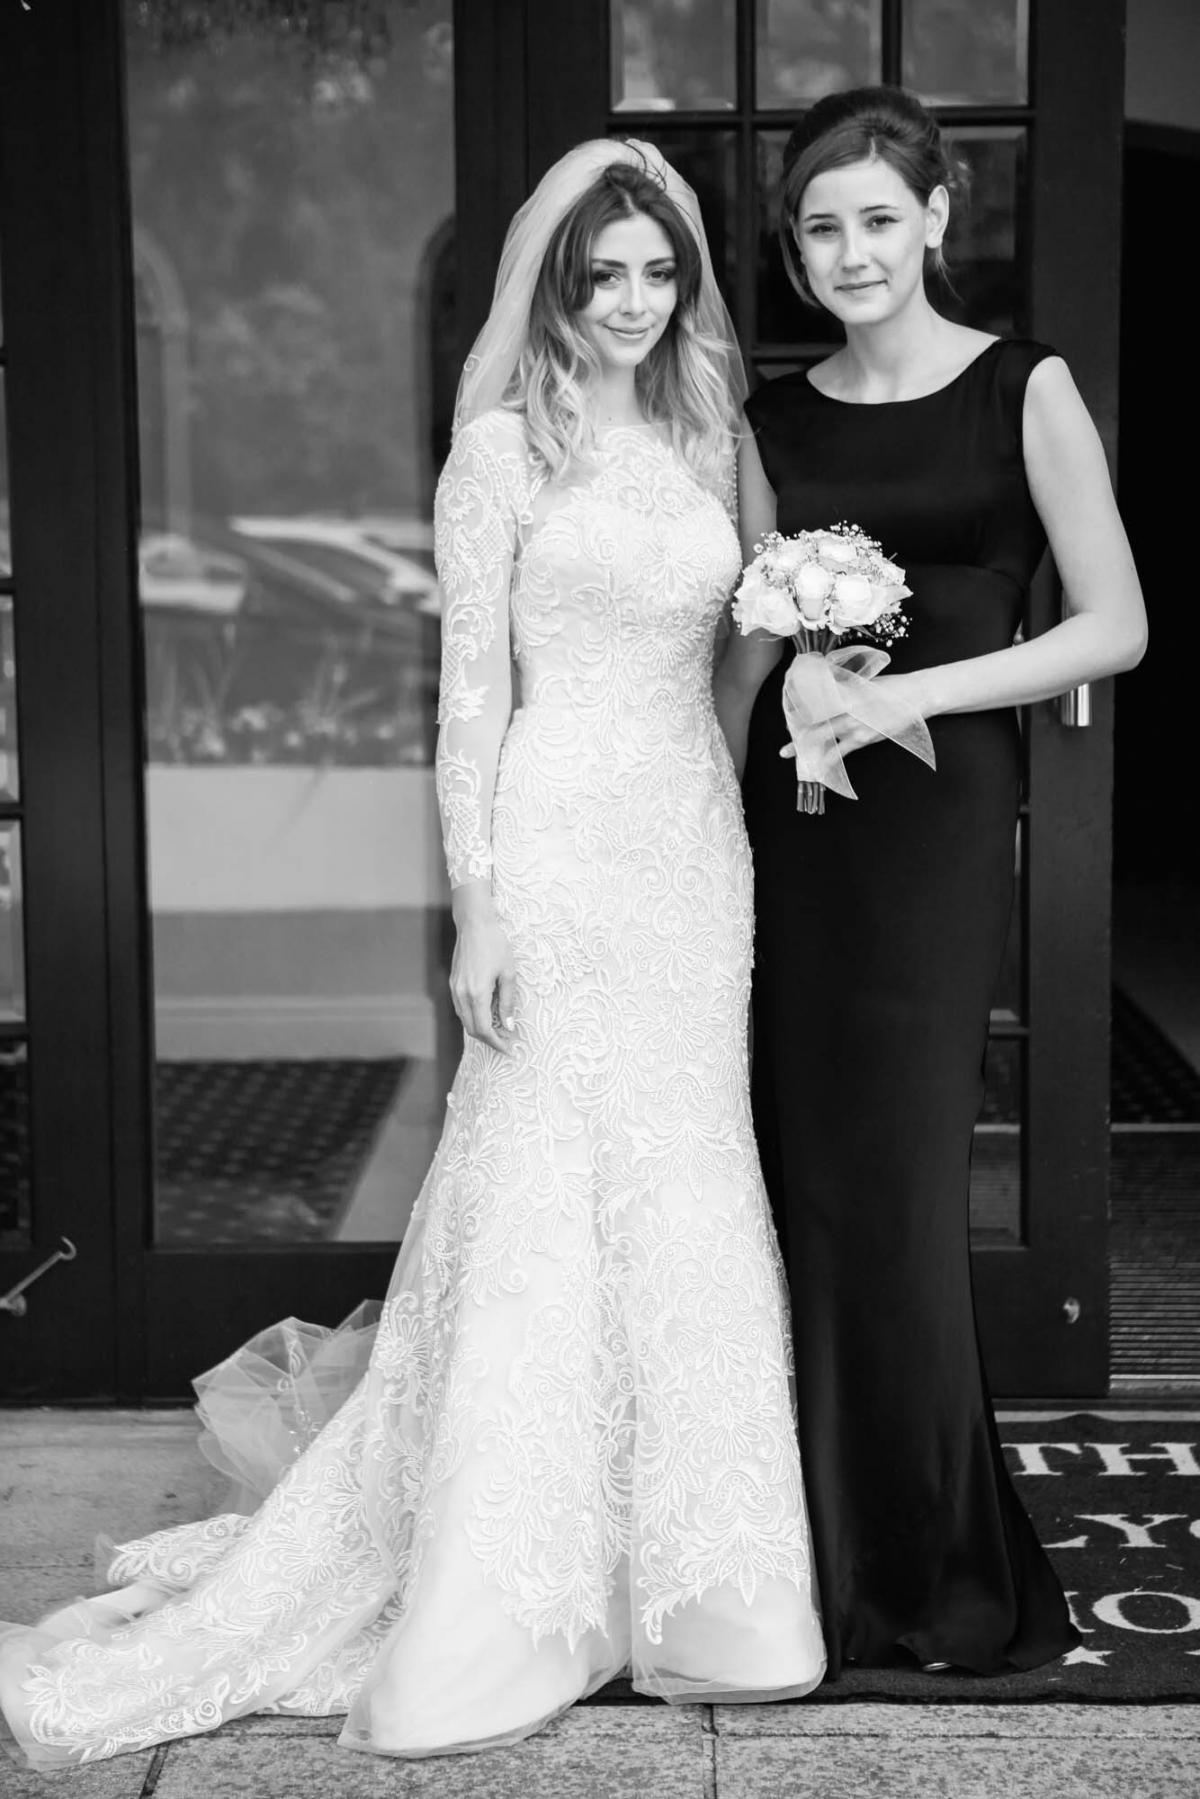 bride, single bridesmaid, lace long sleeve wedding dress, black white wedding photography